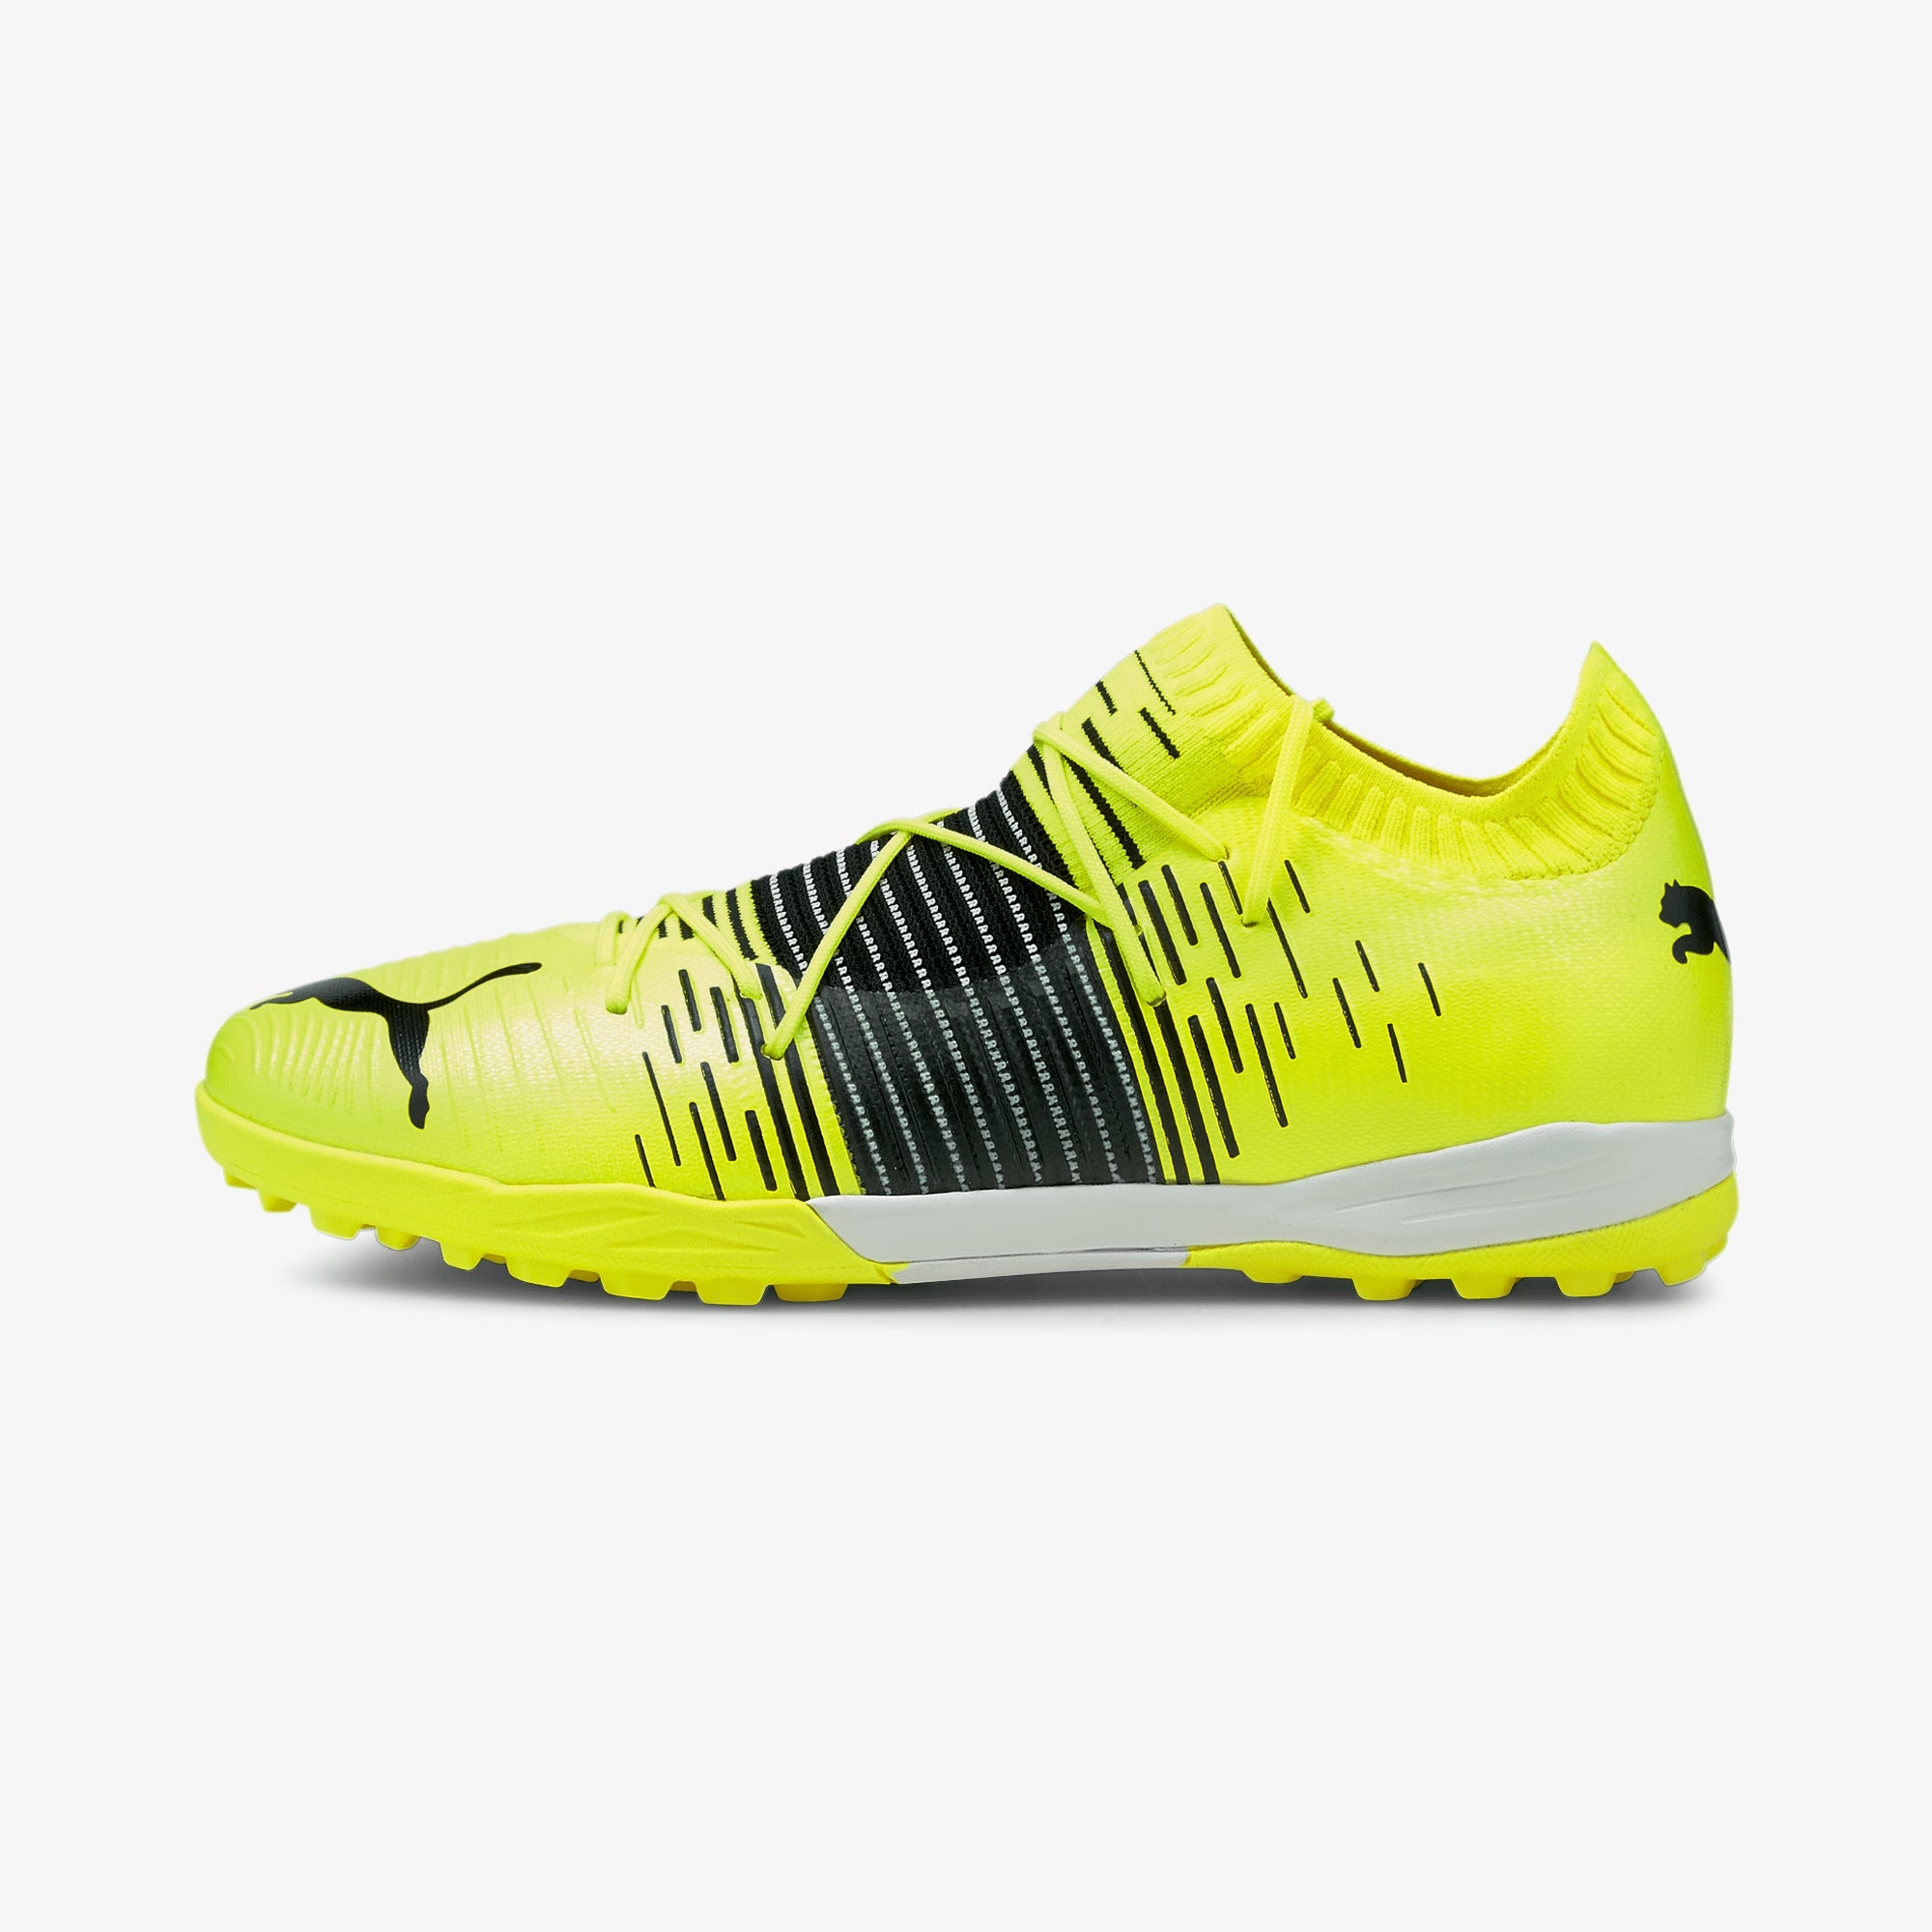 FUTURE Z 1.1 Pro Cage Turf Soccer Shoes Volt Adult